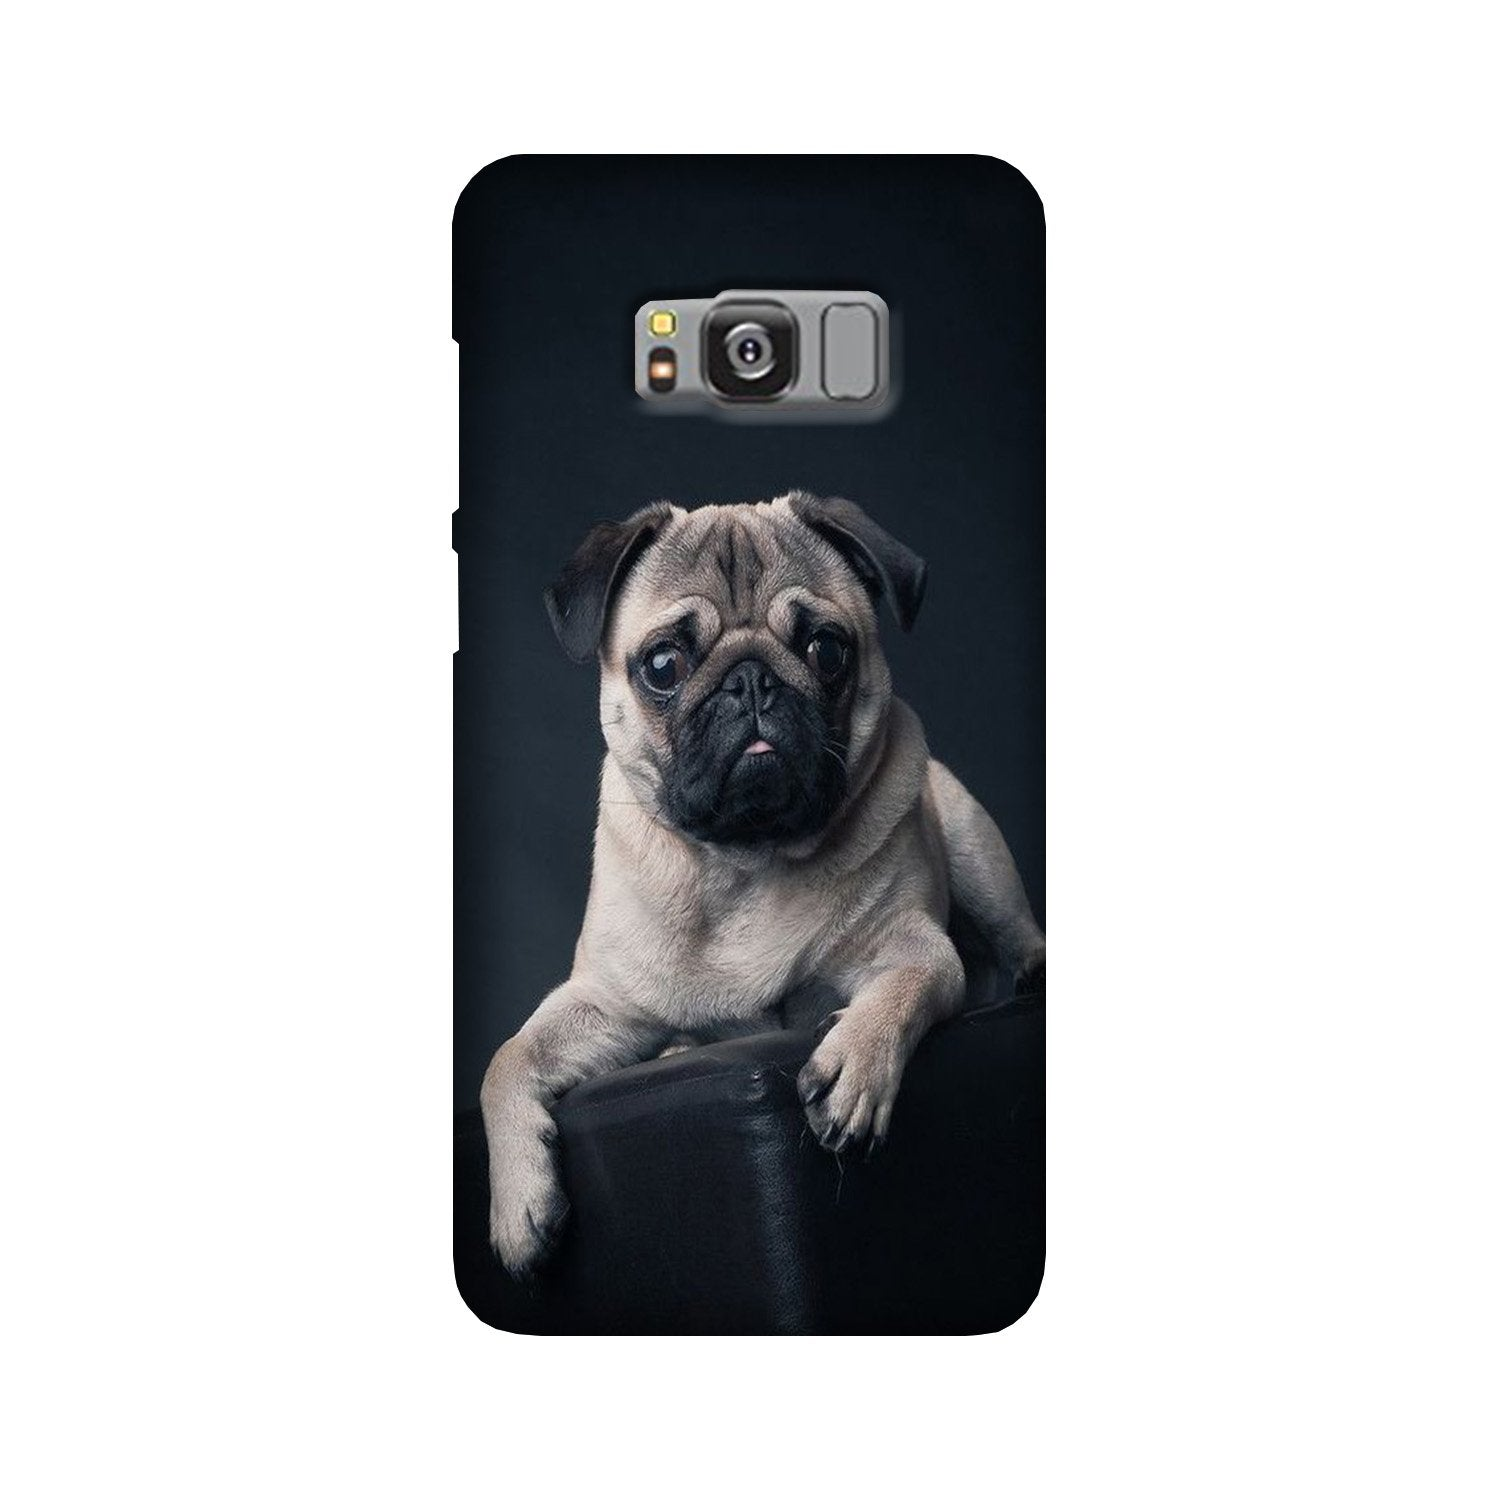 little Puppy Case for Galaxy S8 Plus